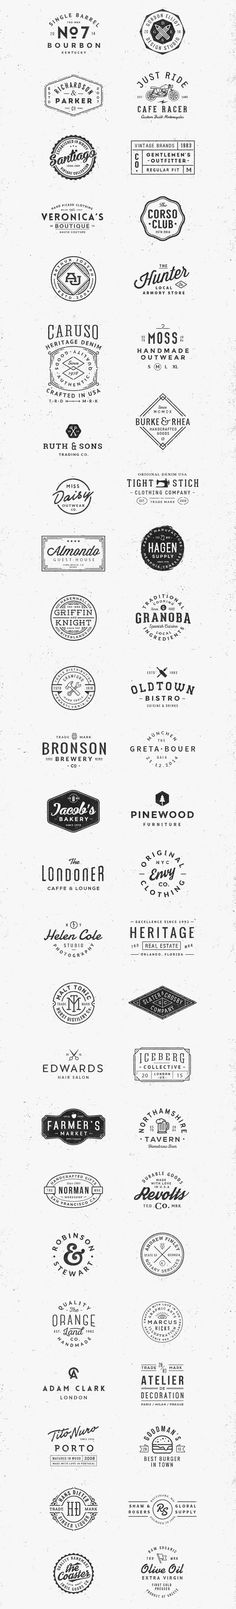 1059 Best Logo Images On Pinterest Game Logo, Logo Inspiration   Client  Information Form Template  Client Information Form Template